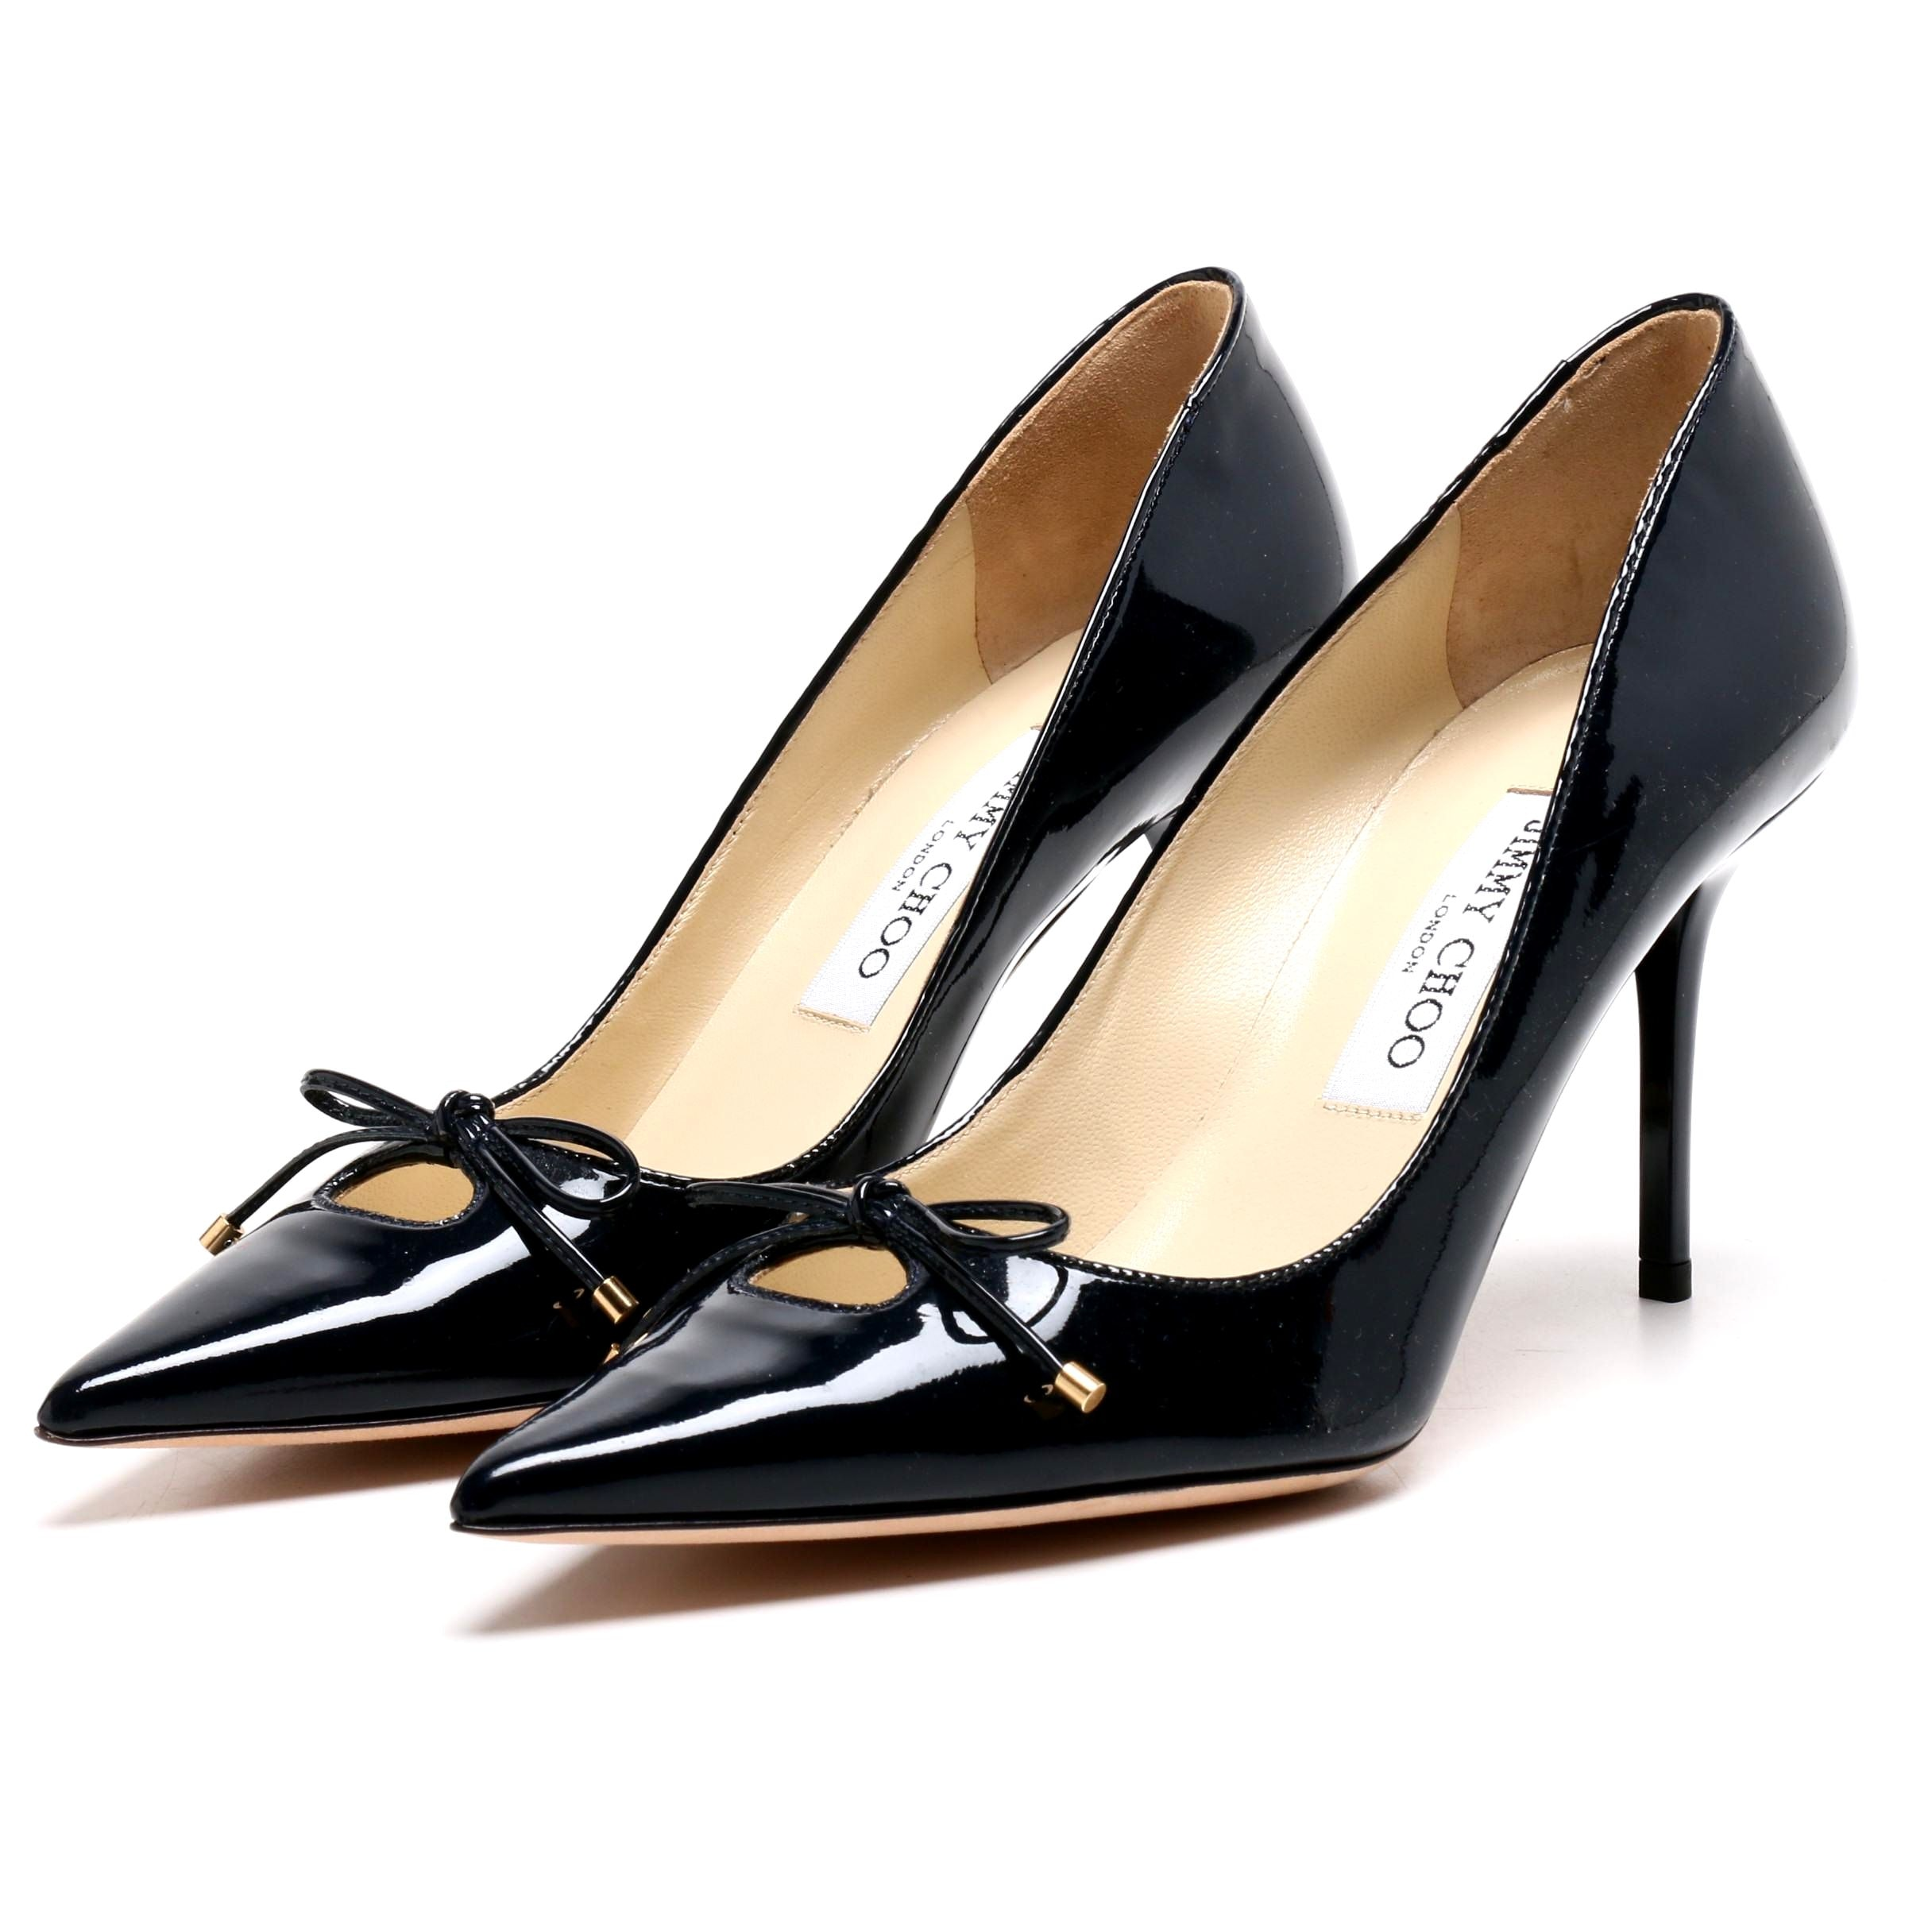 Jimmy Choo London Navy Blue Patent Leather Pumps with Bow